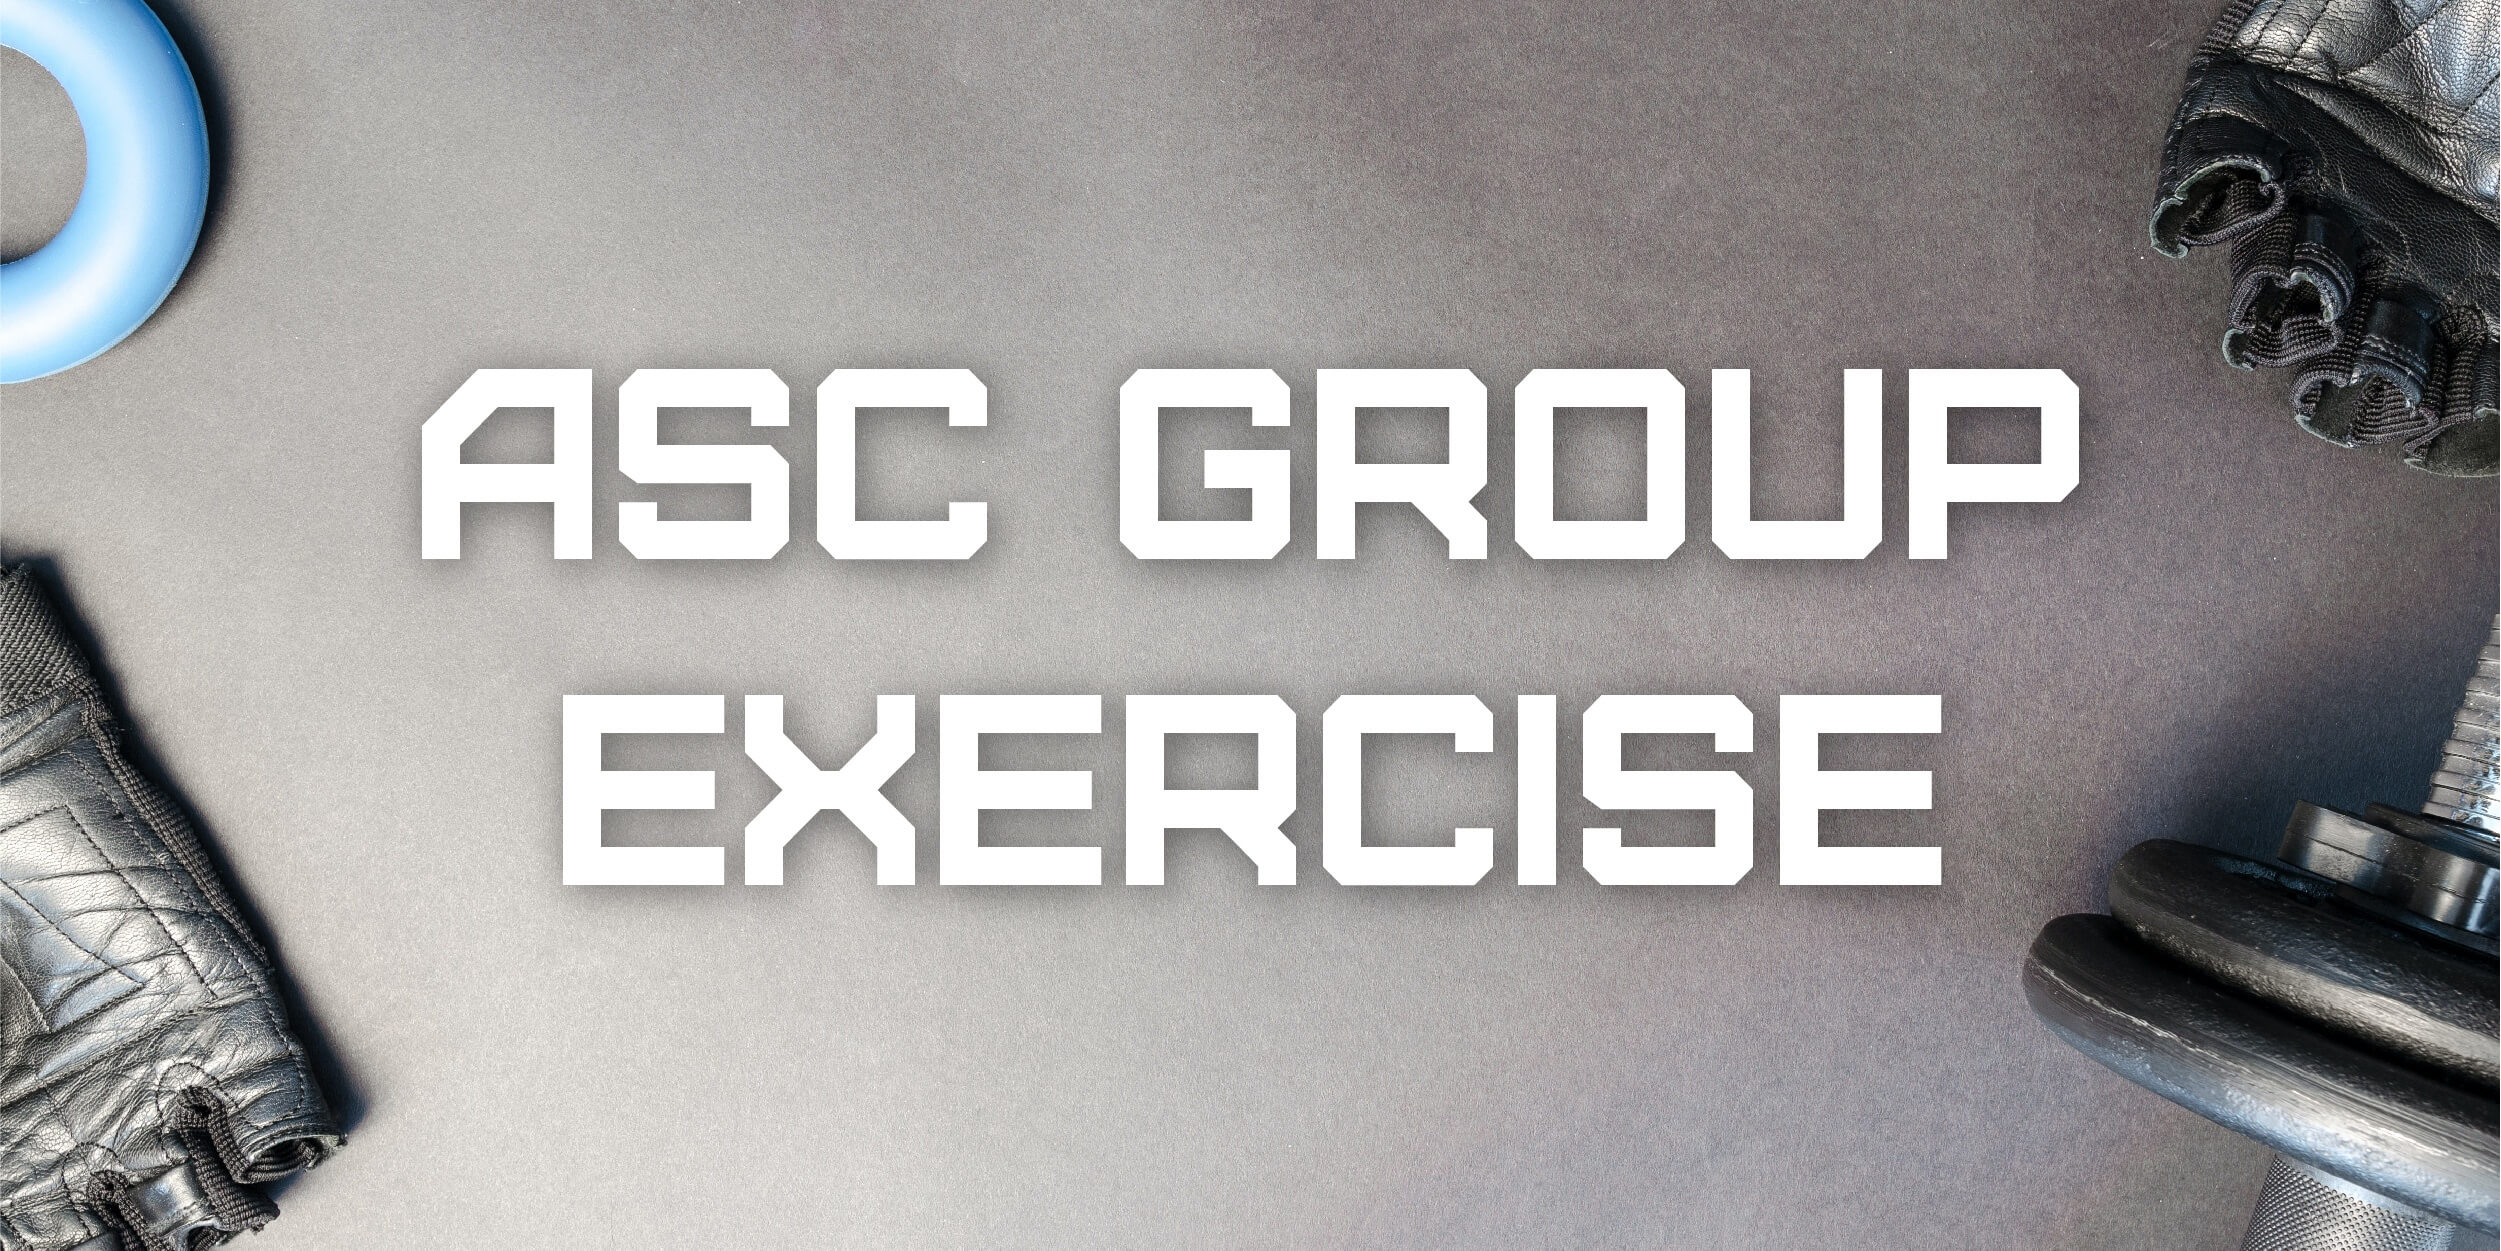 ASC Group Exercise!